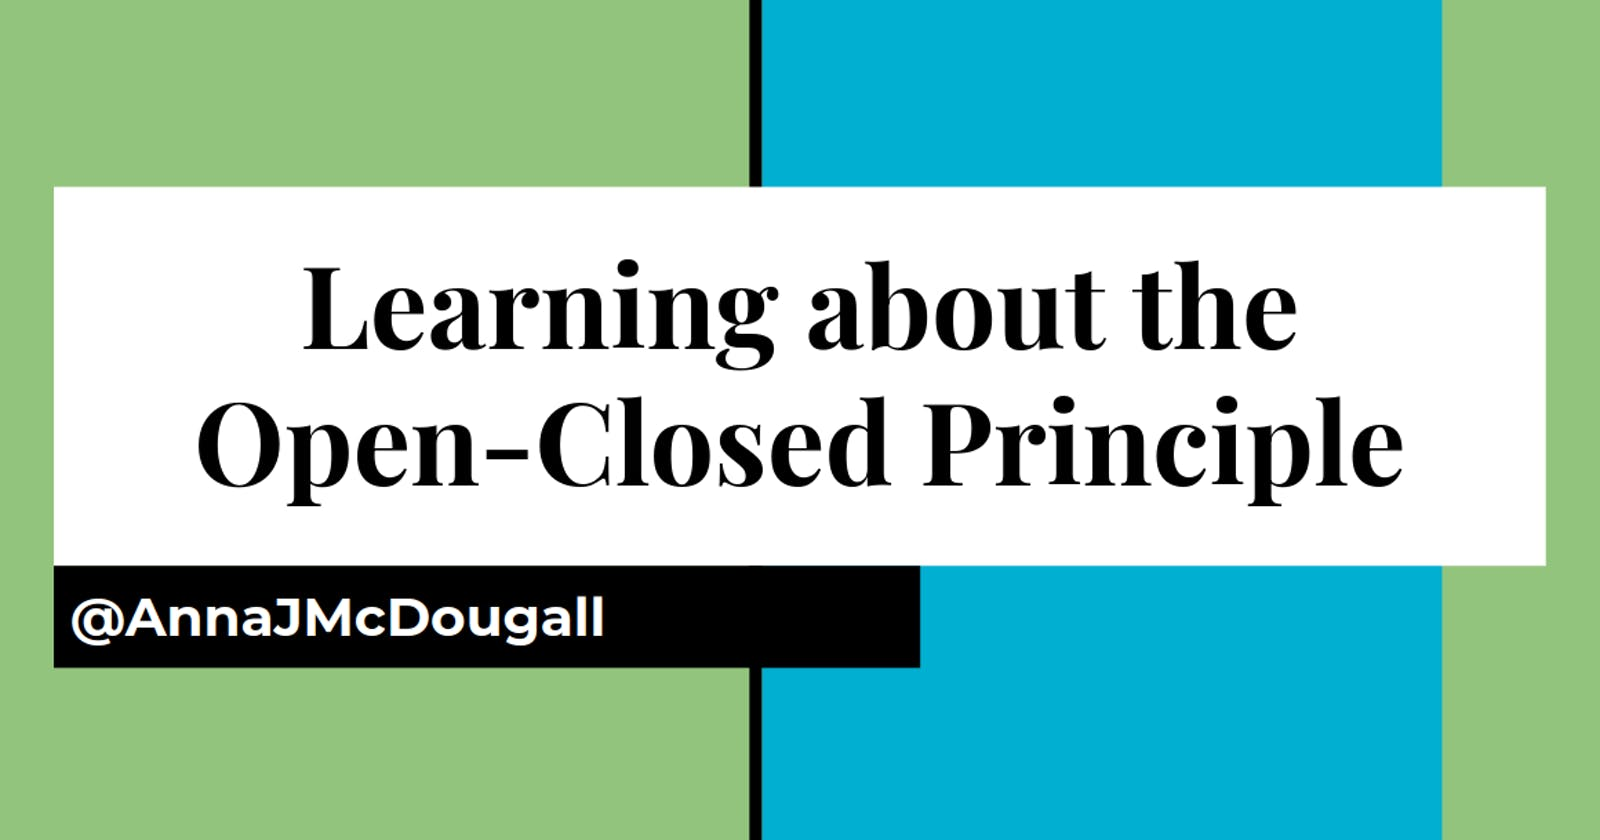 Learning about the Open-Closed Principle